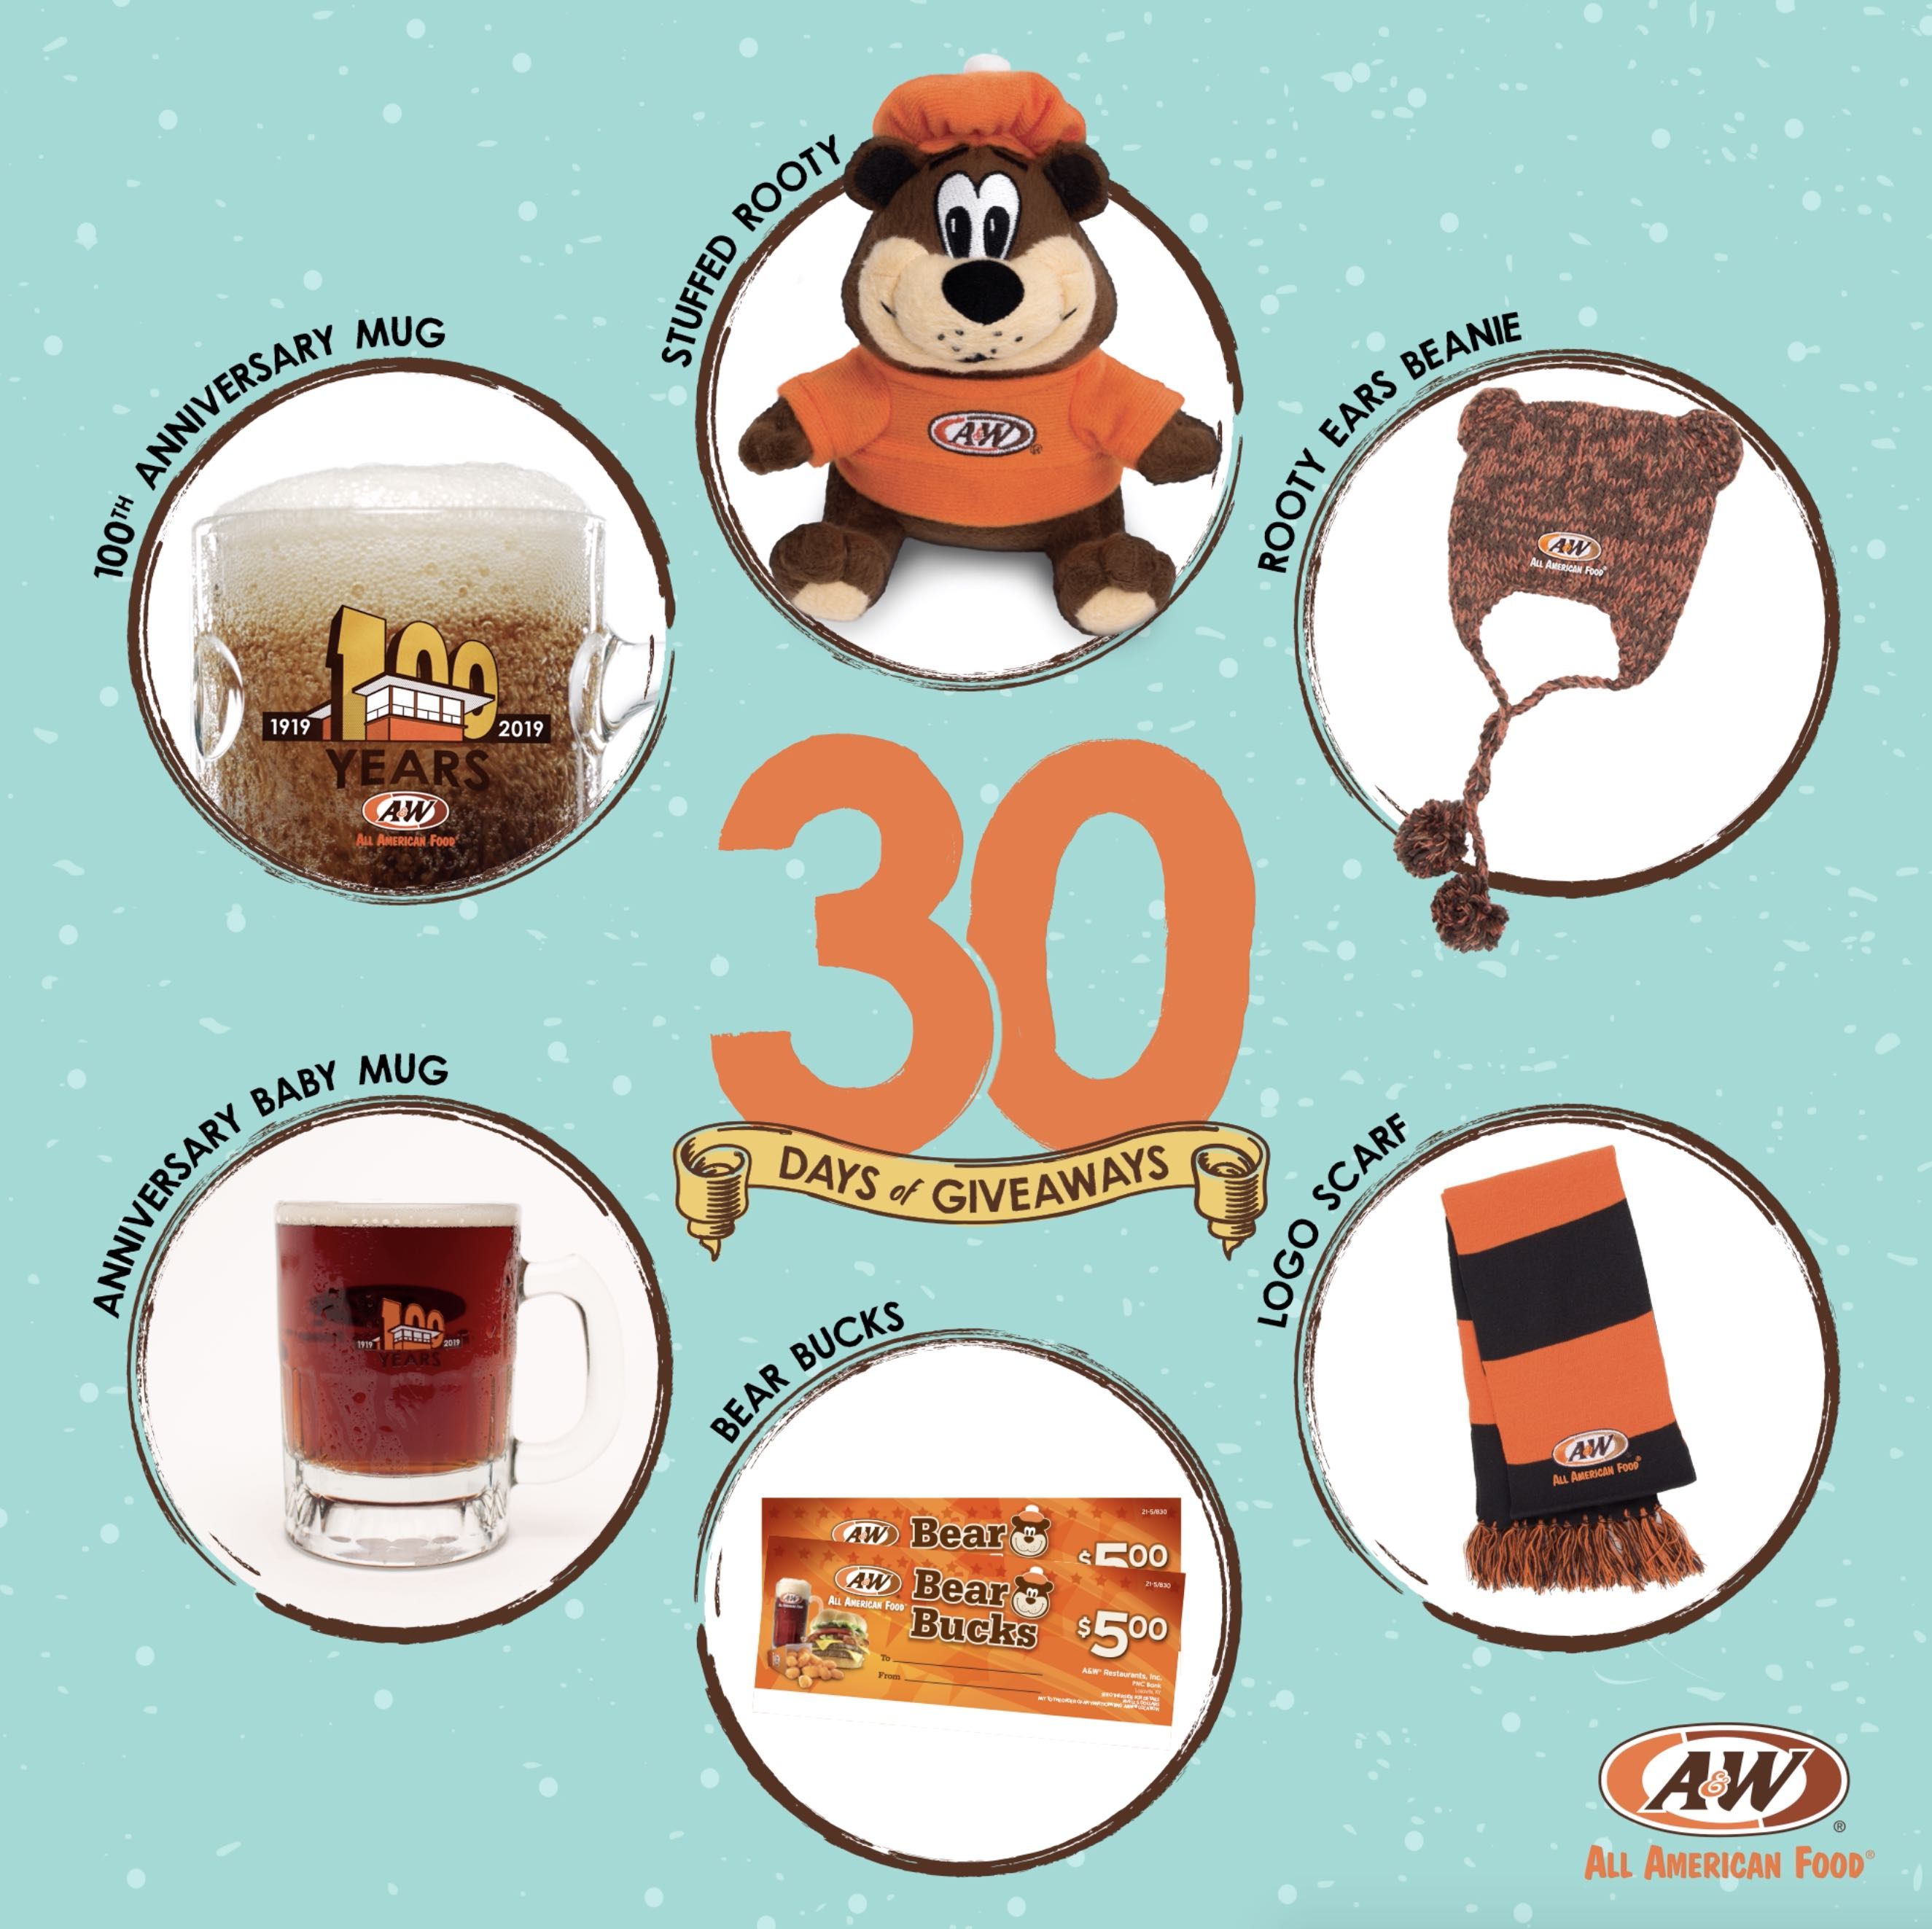 Bear Bucks, Stuffed Rooty, 100th Anniversary Baby Mug, 100th Anniversary Collector's Mug, Scarf, Rooty Ear Beanie on a blue background. 30 Days of Giveaways logo is in the center of the image with the A&W Restaurants logo in the bottom right.